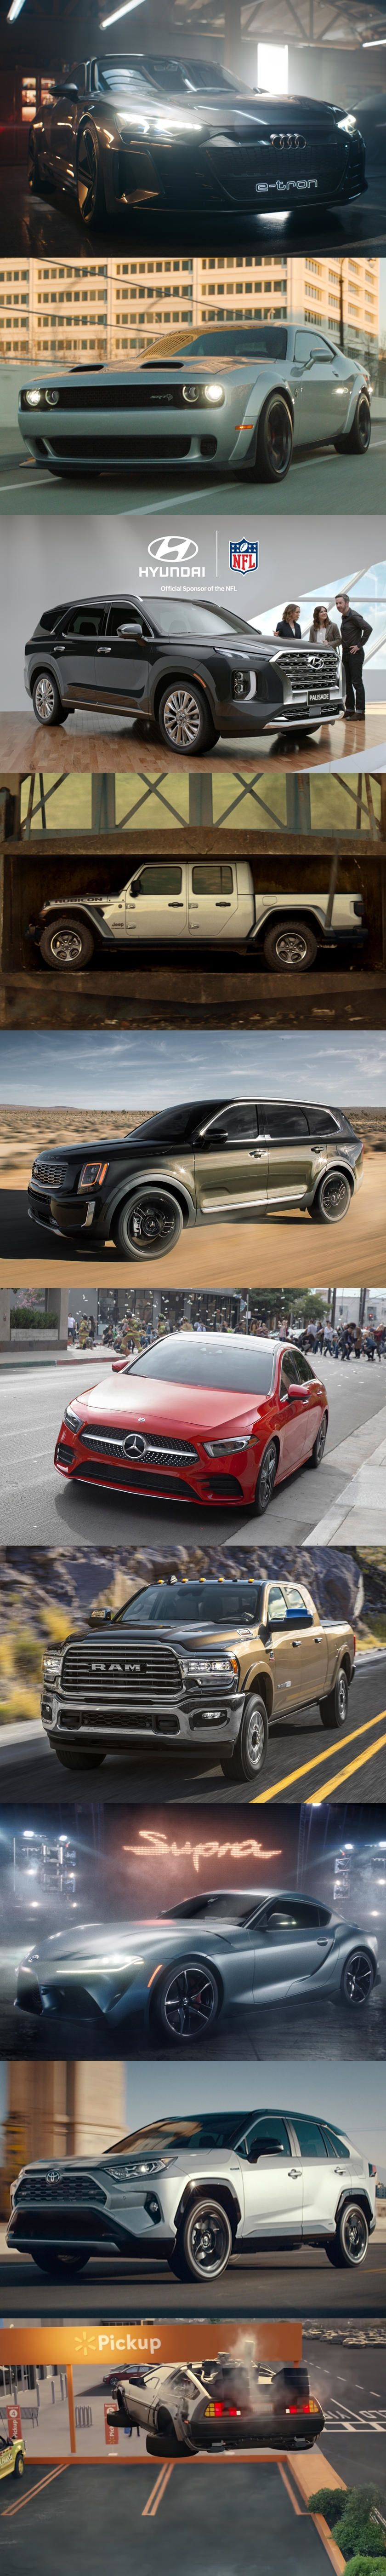 Here Are All The Cool Car Commercials From Super Bowl Liii Which Was Your Favorite Super Bowl Car Commercial This Ye Super Bowl Cool Cars Japanese Sports Cars